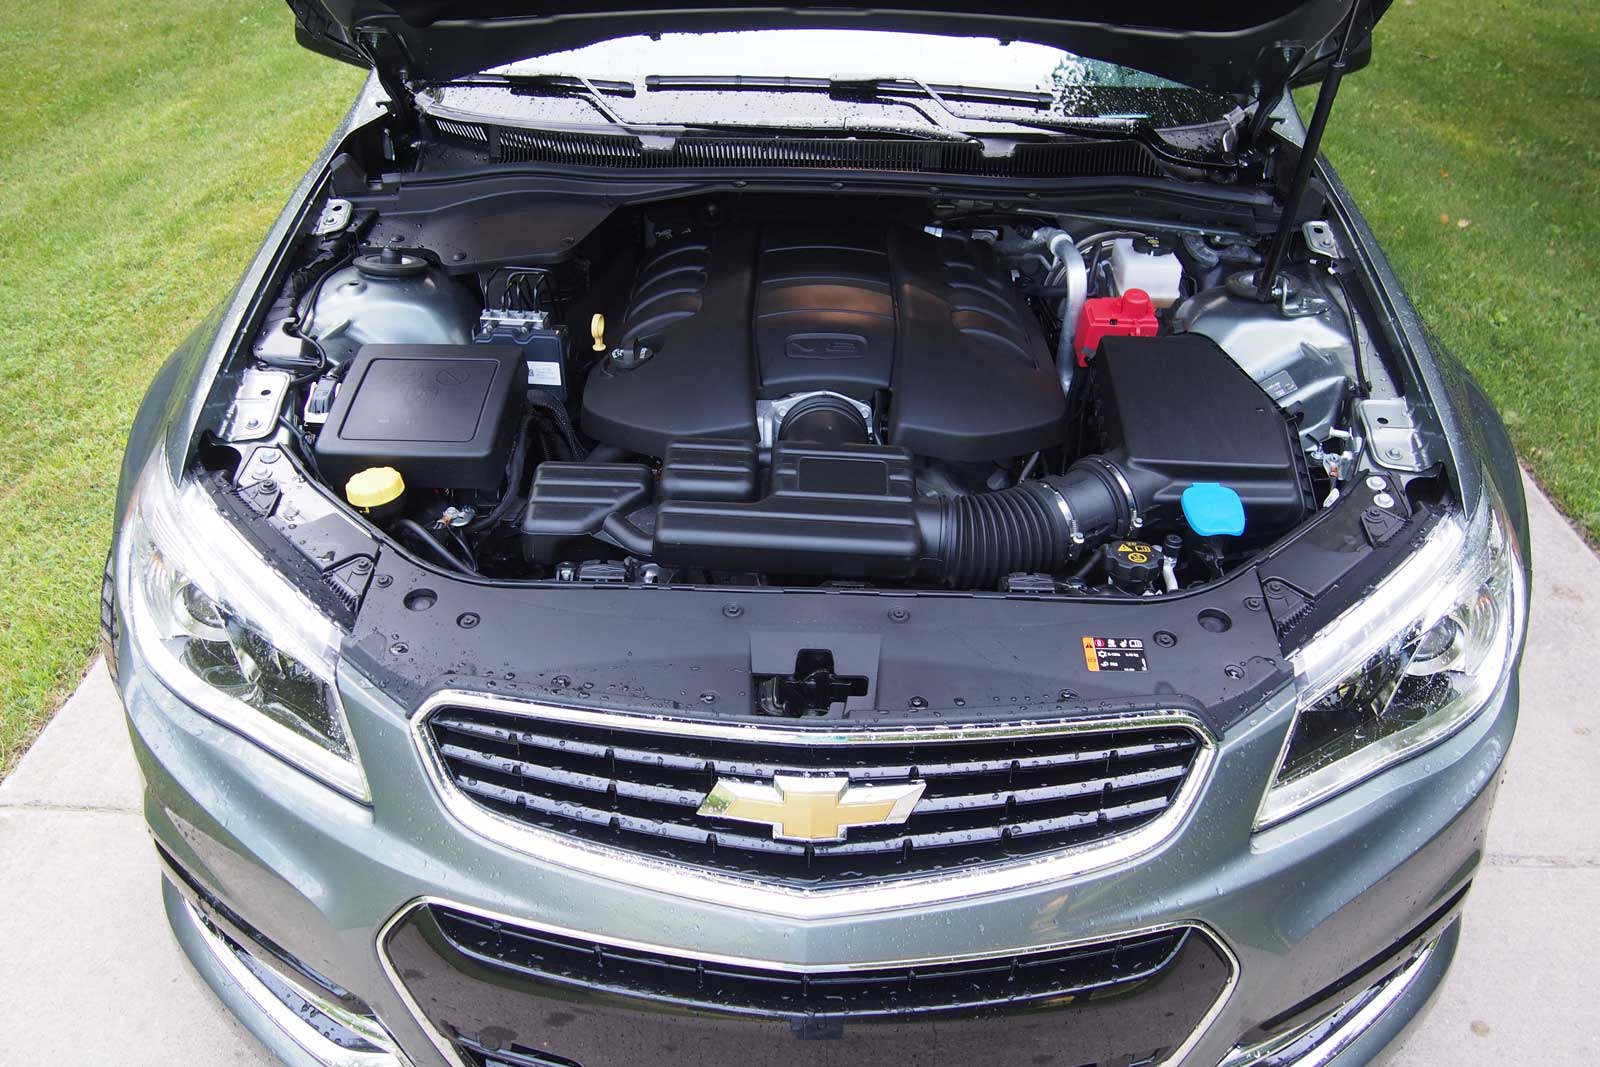 2015 chevrolet ss review autoguide 2015 chevrolet ss engine 01 publicscrutiny Gallery